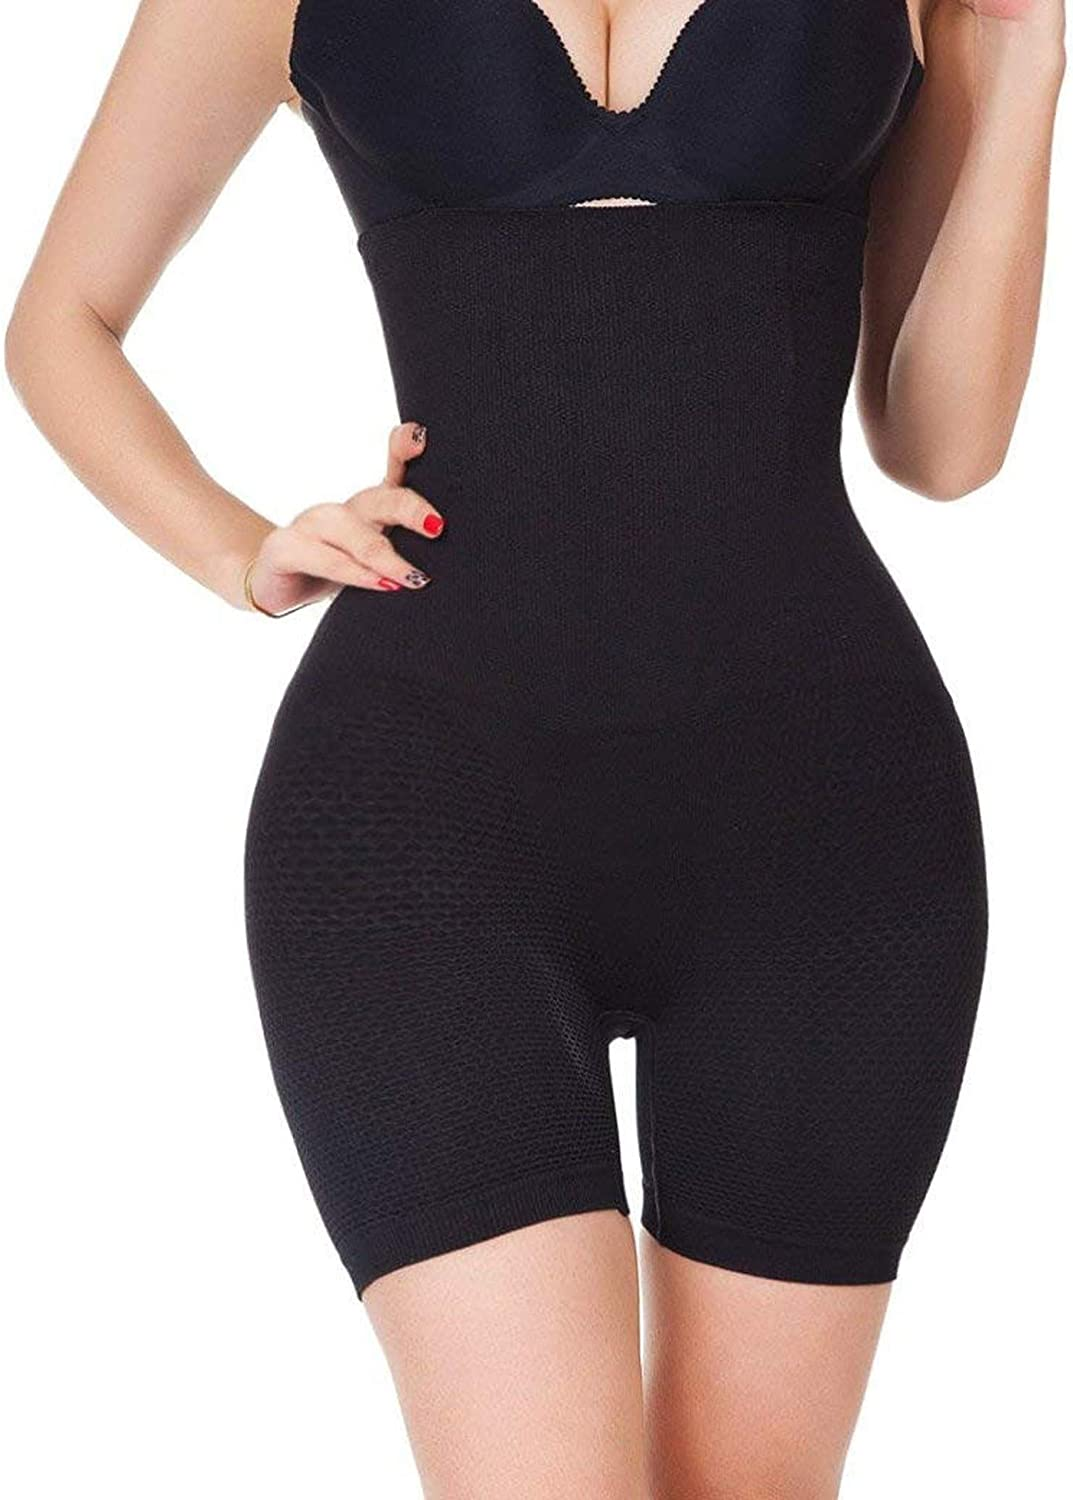 Rather be Sexy Butt Lifter Women Slimming Shapewear High Waist Shaper Boyshort Tight Power Short